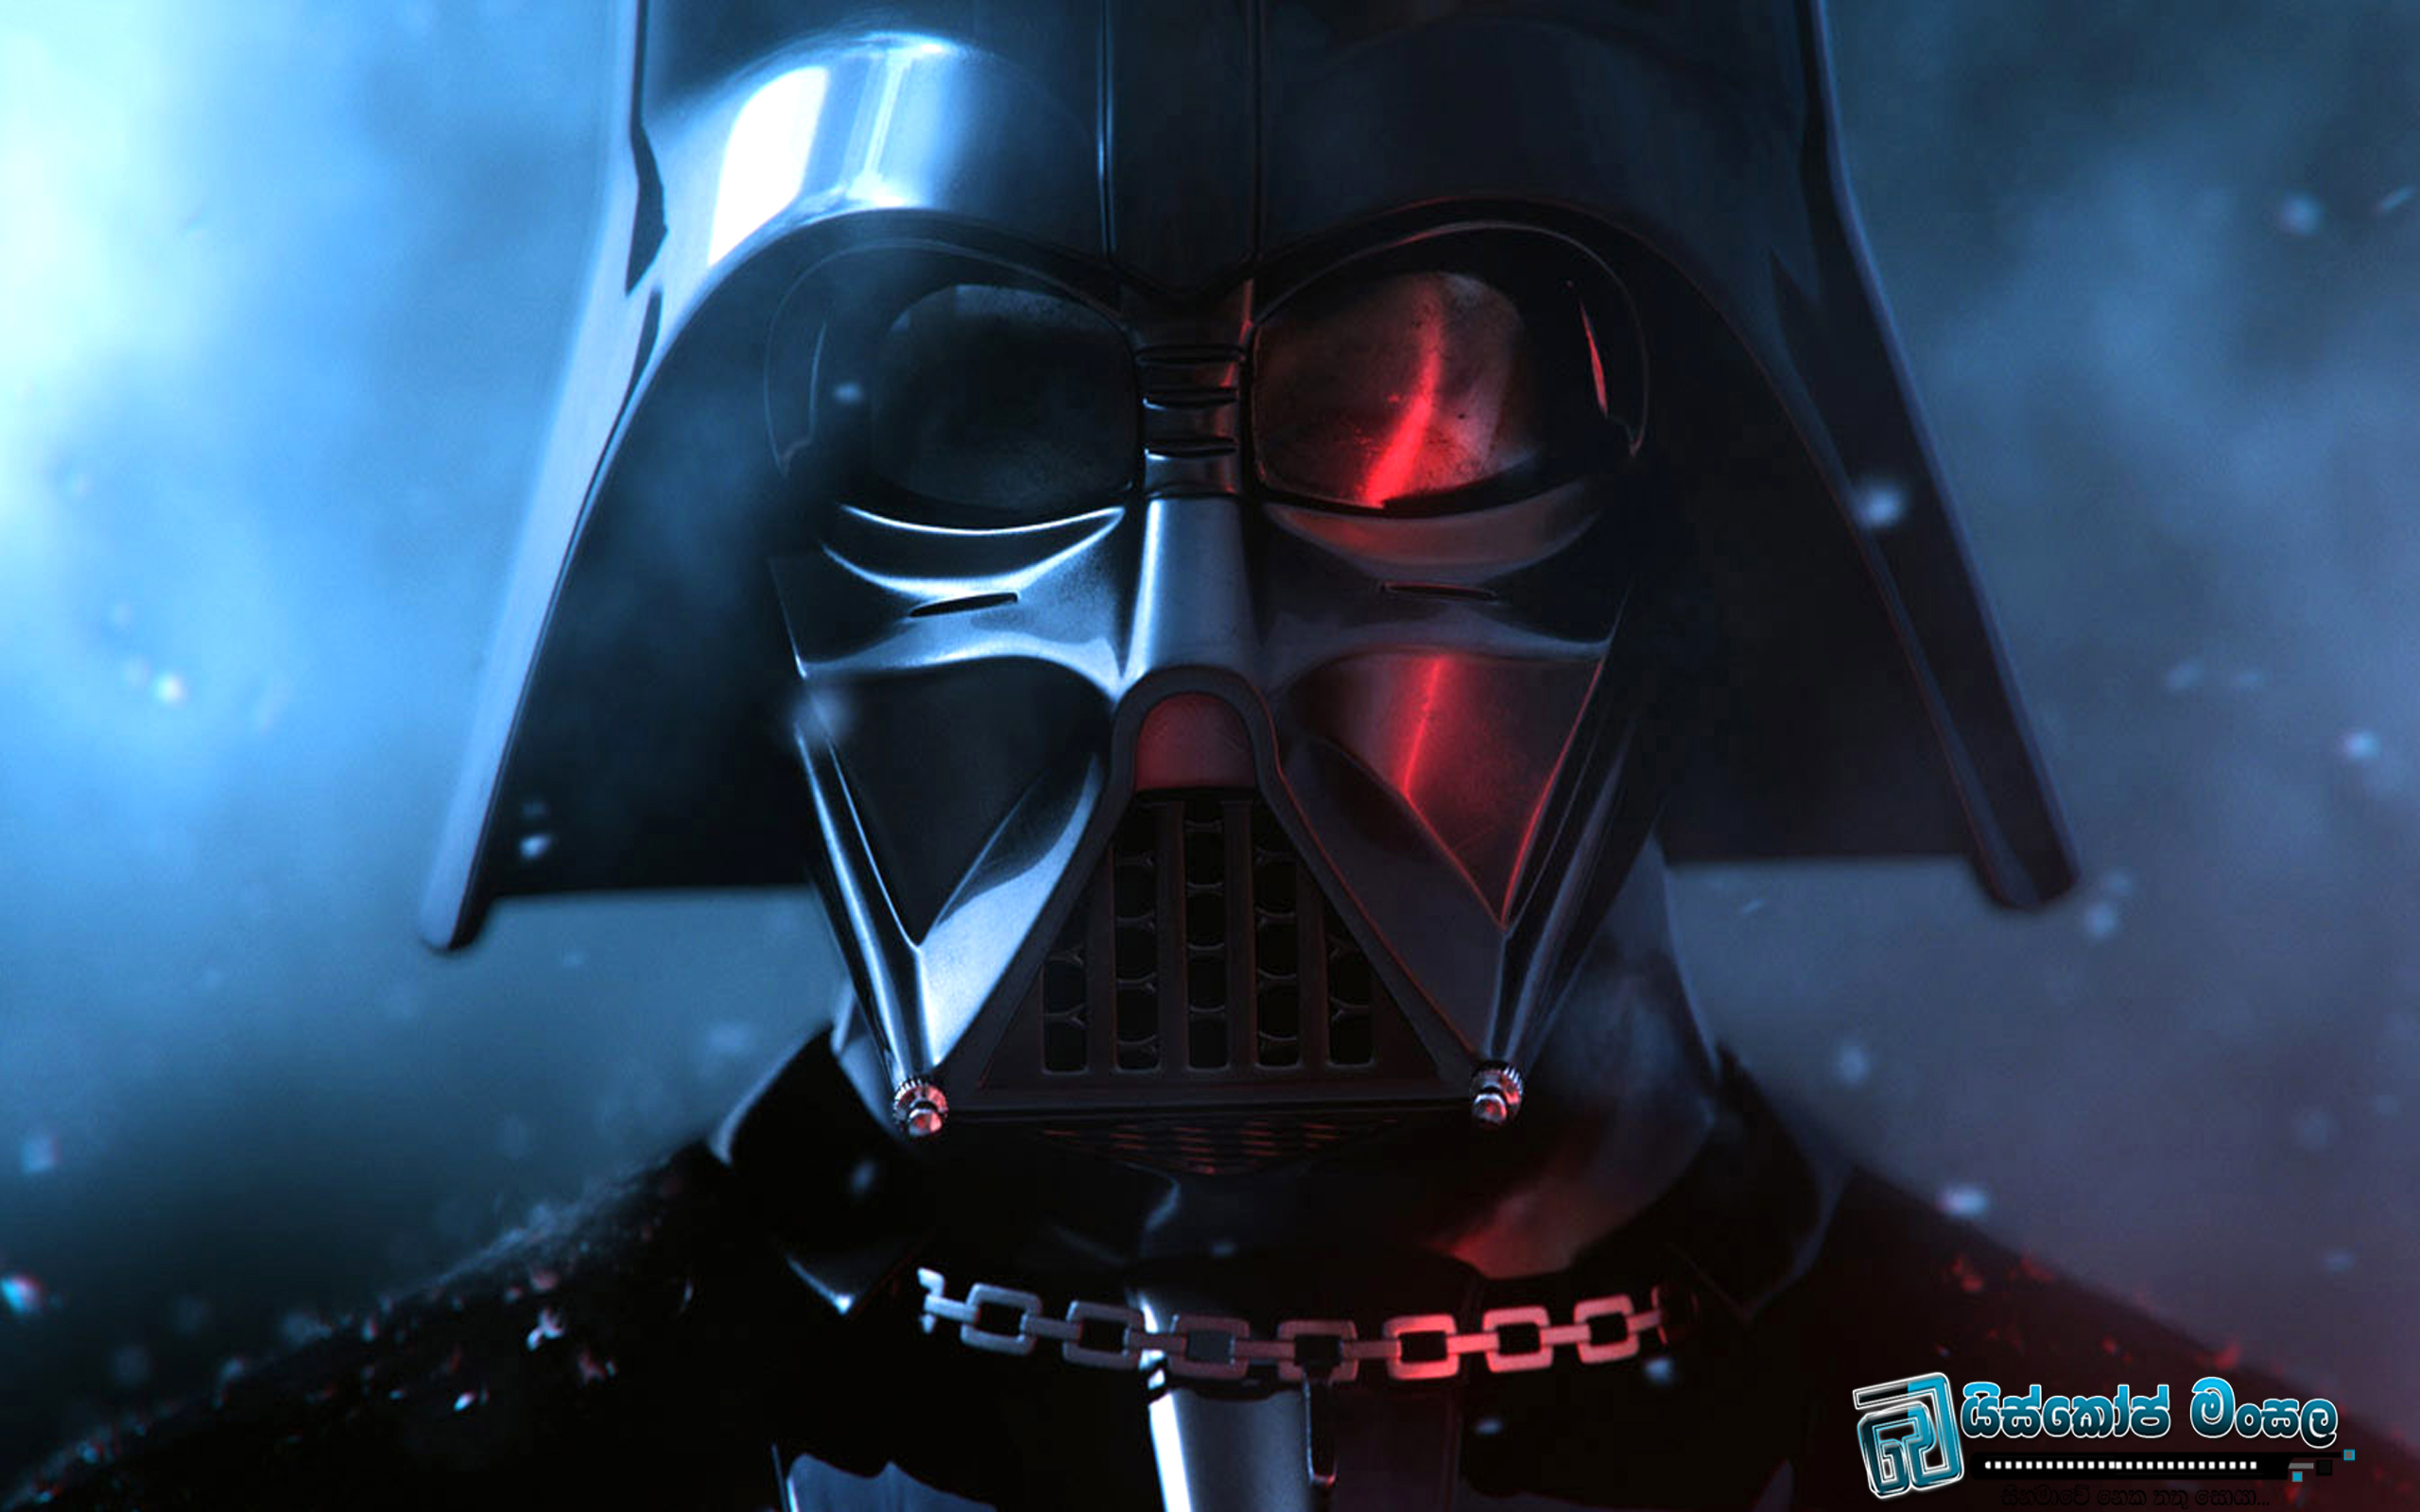 785307-darth-vader-wallpaper